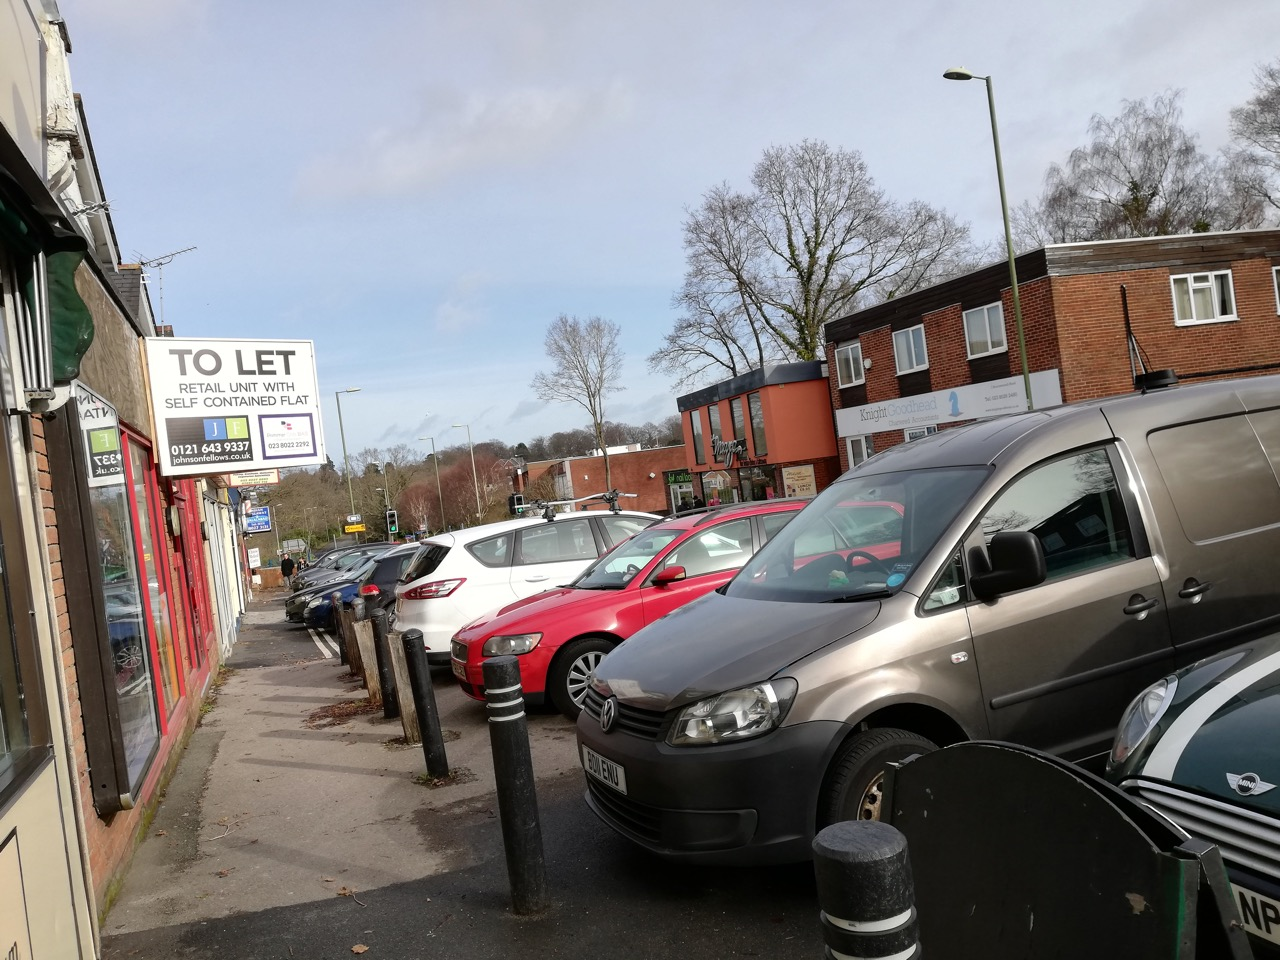 Let's be more considerate when parking on Bournemouth Road